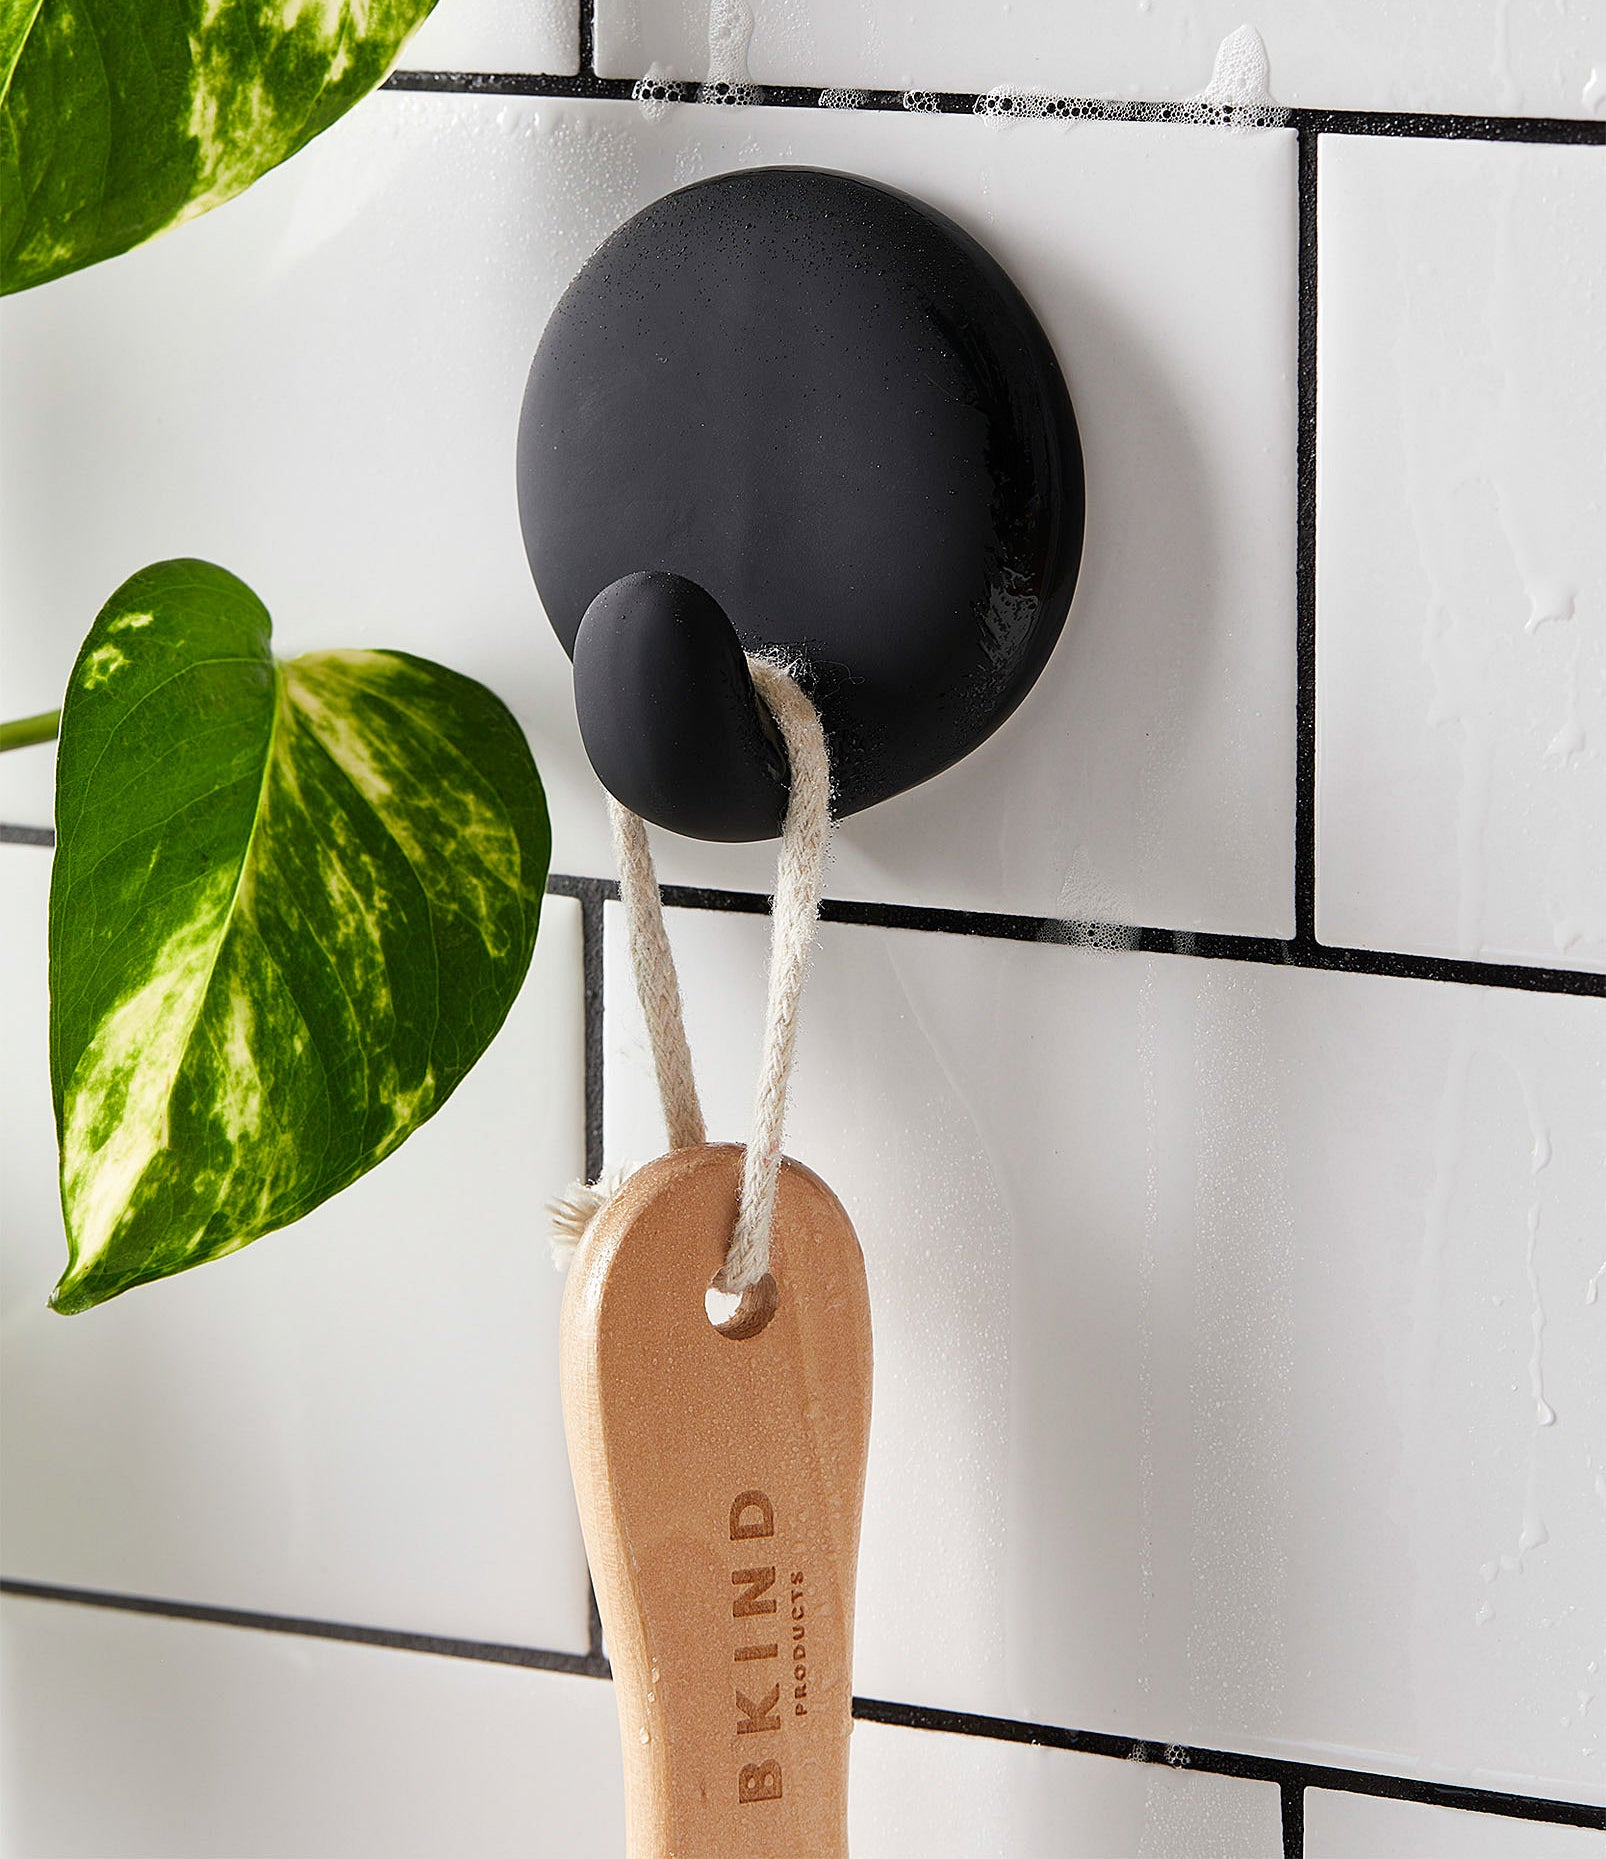 A small hook attached to a tiled wall with a wooden brush hanging from it